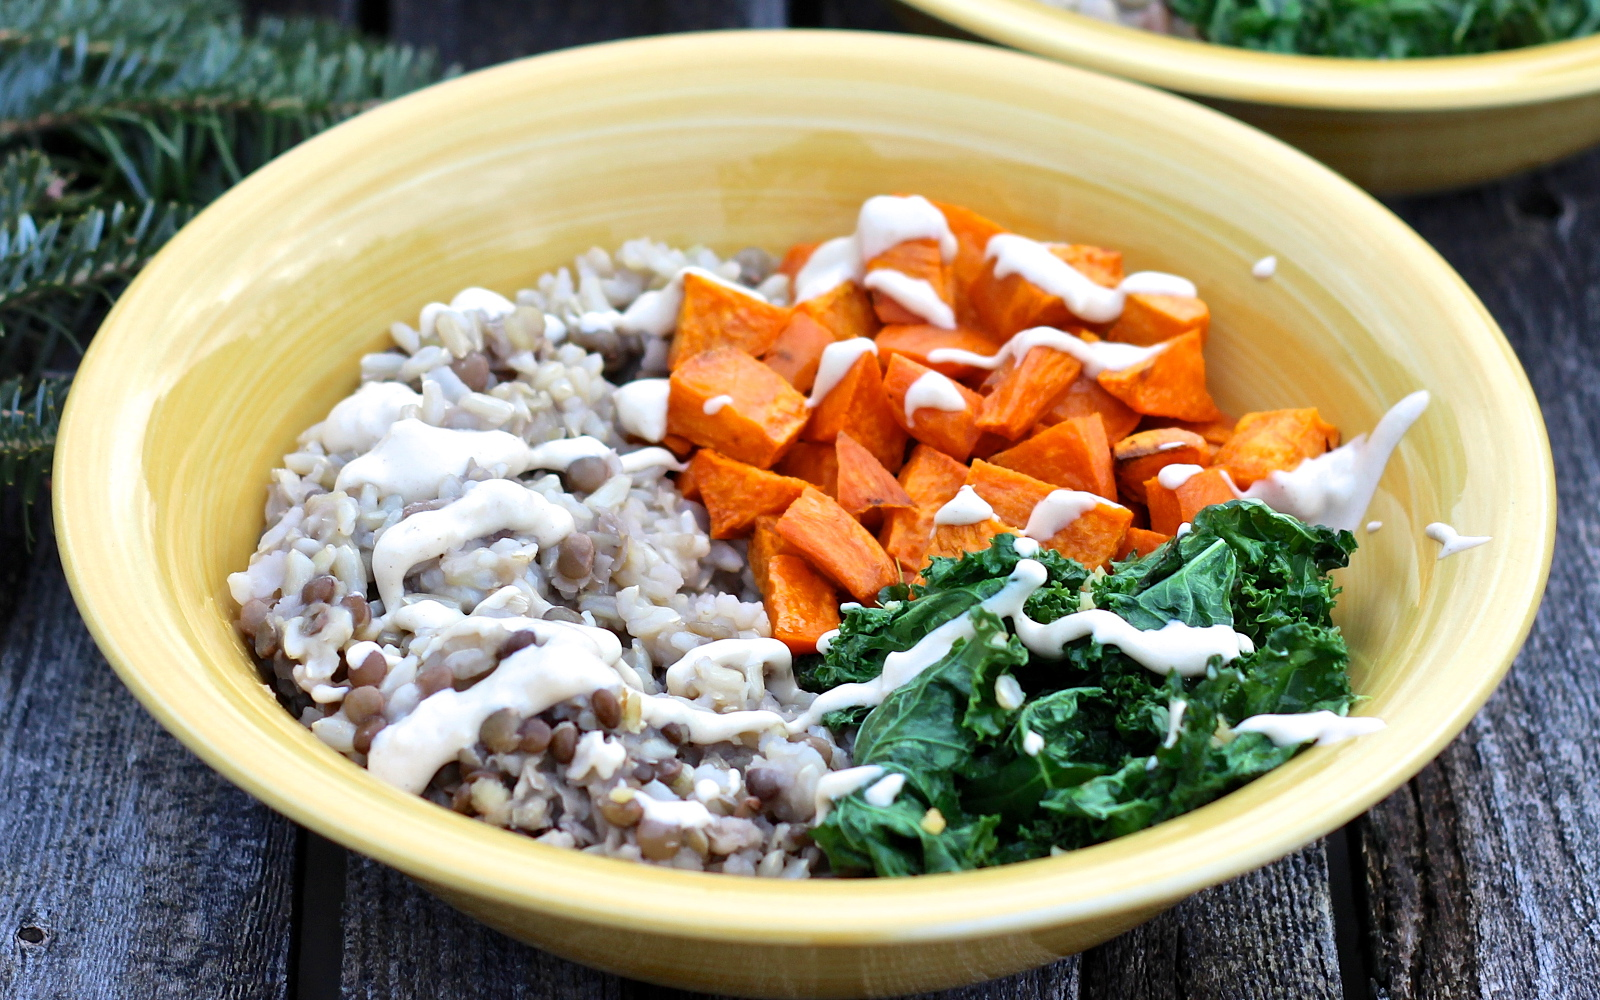 Wholesome Winter Power Bowl With Sweet Potato, Kale, and Lemon-Tahini Dressing